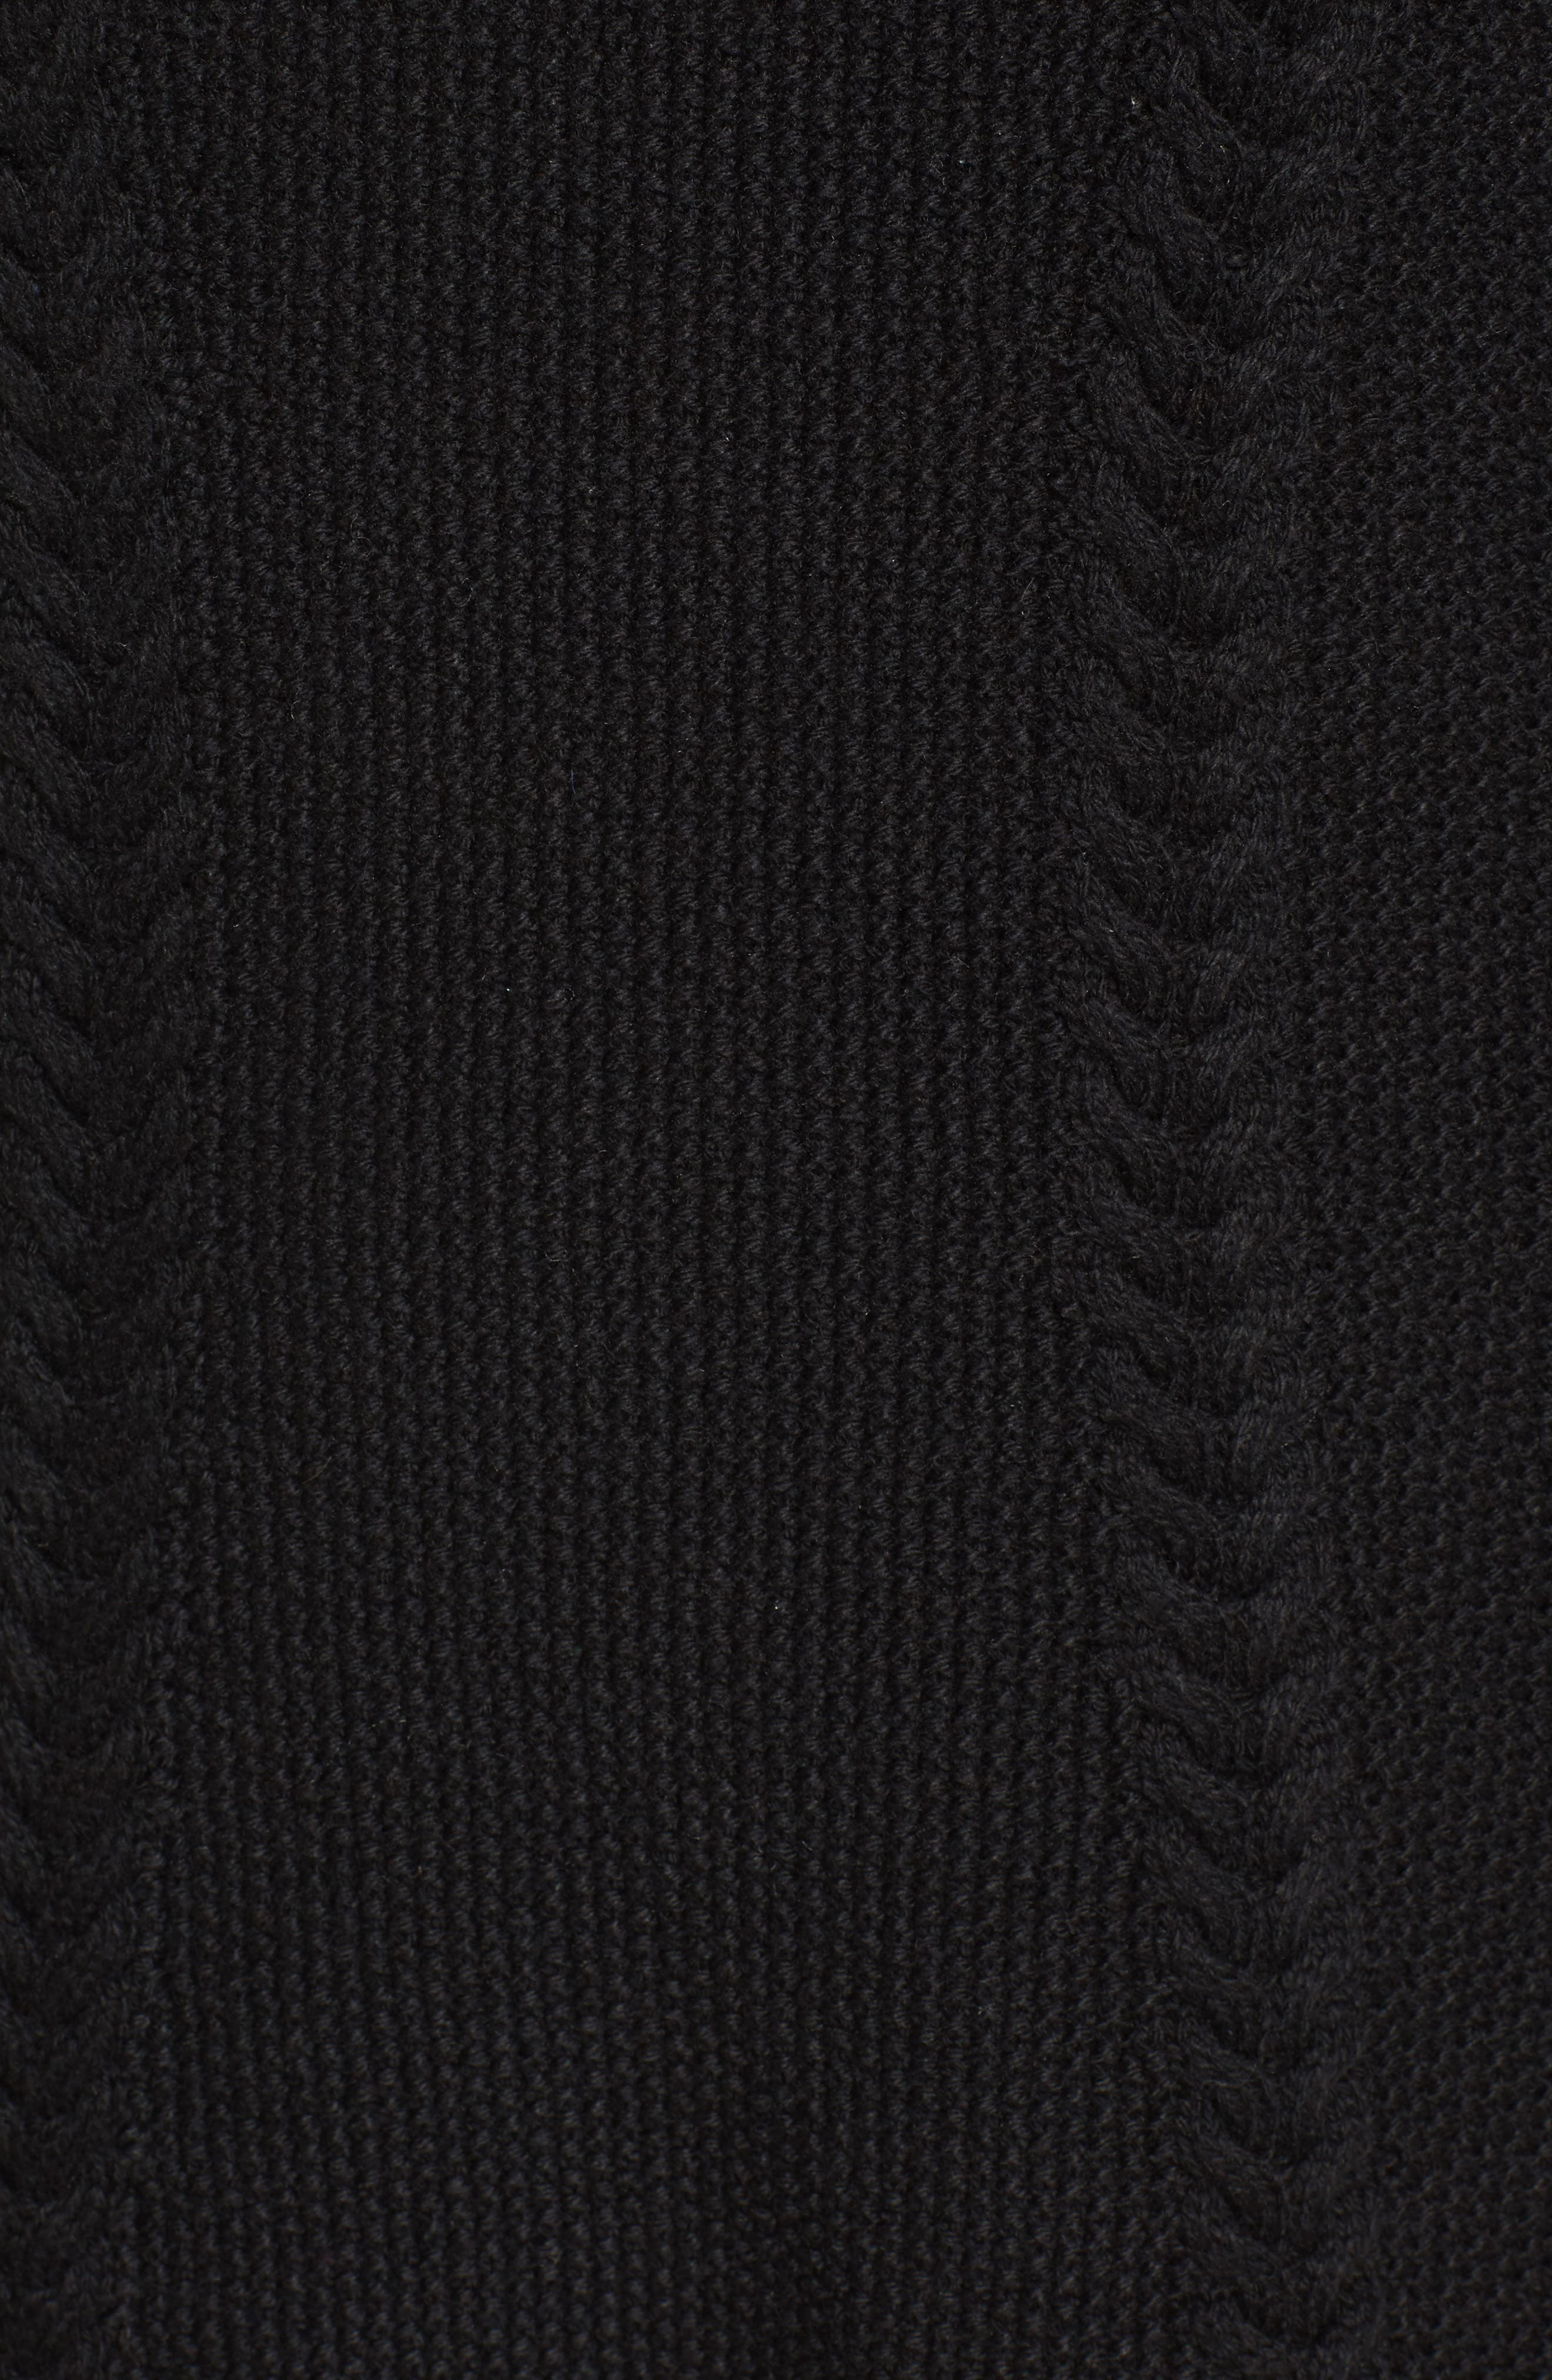 Cable Knit Sweater Dress,                             Alternate thumbnail 9, color,